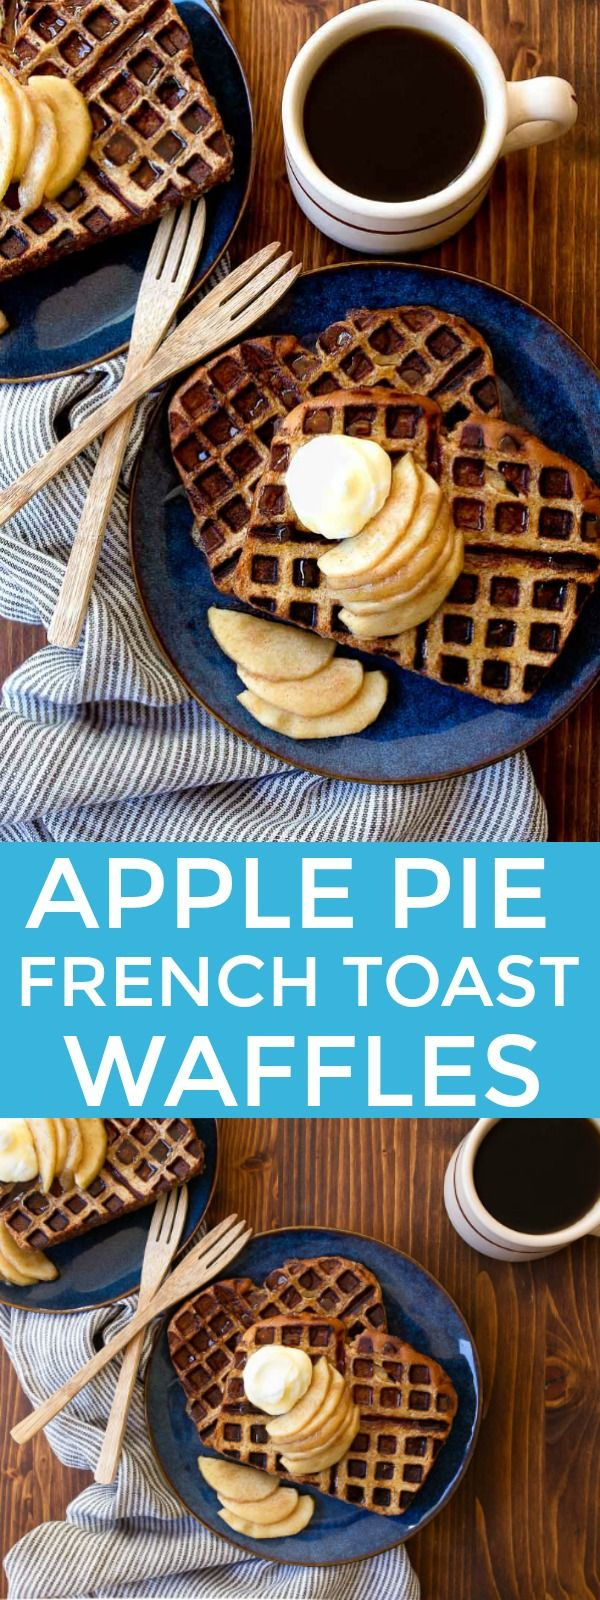 Waffle iron ideas: make French Toast Waffles in the waffle iron. Apple pie or pumpkin flavored waffles for the win!